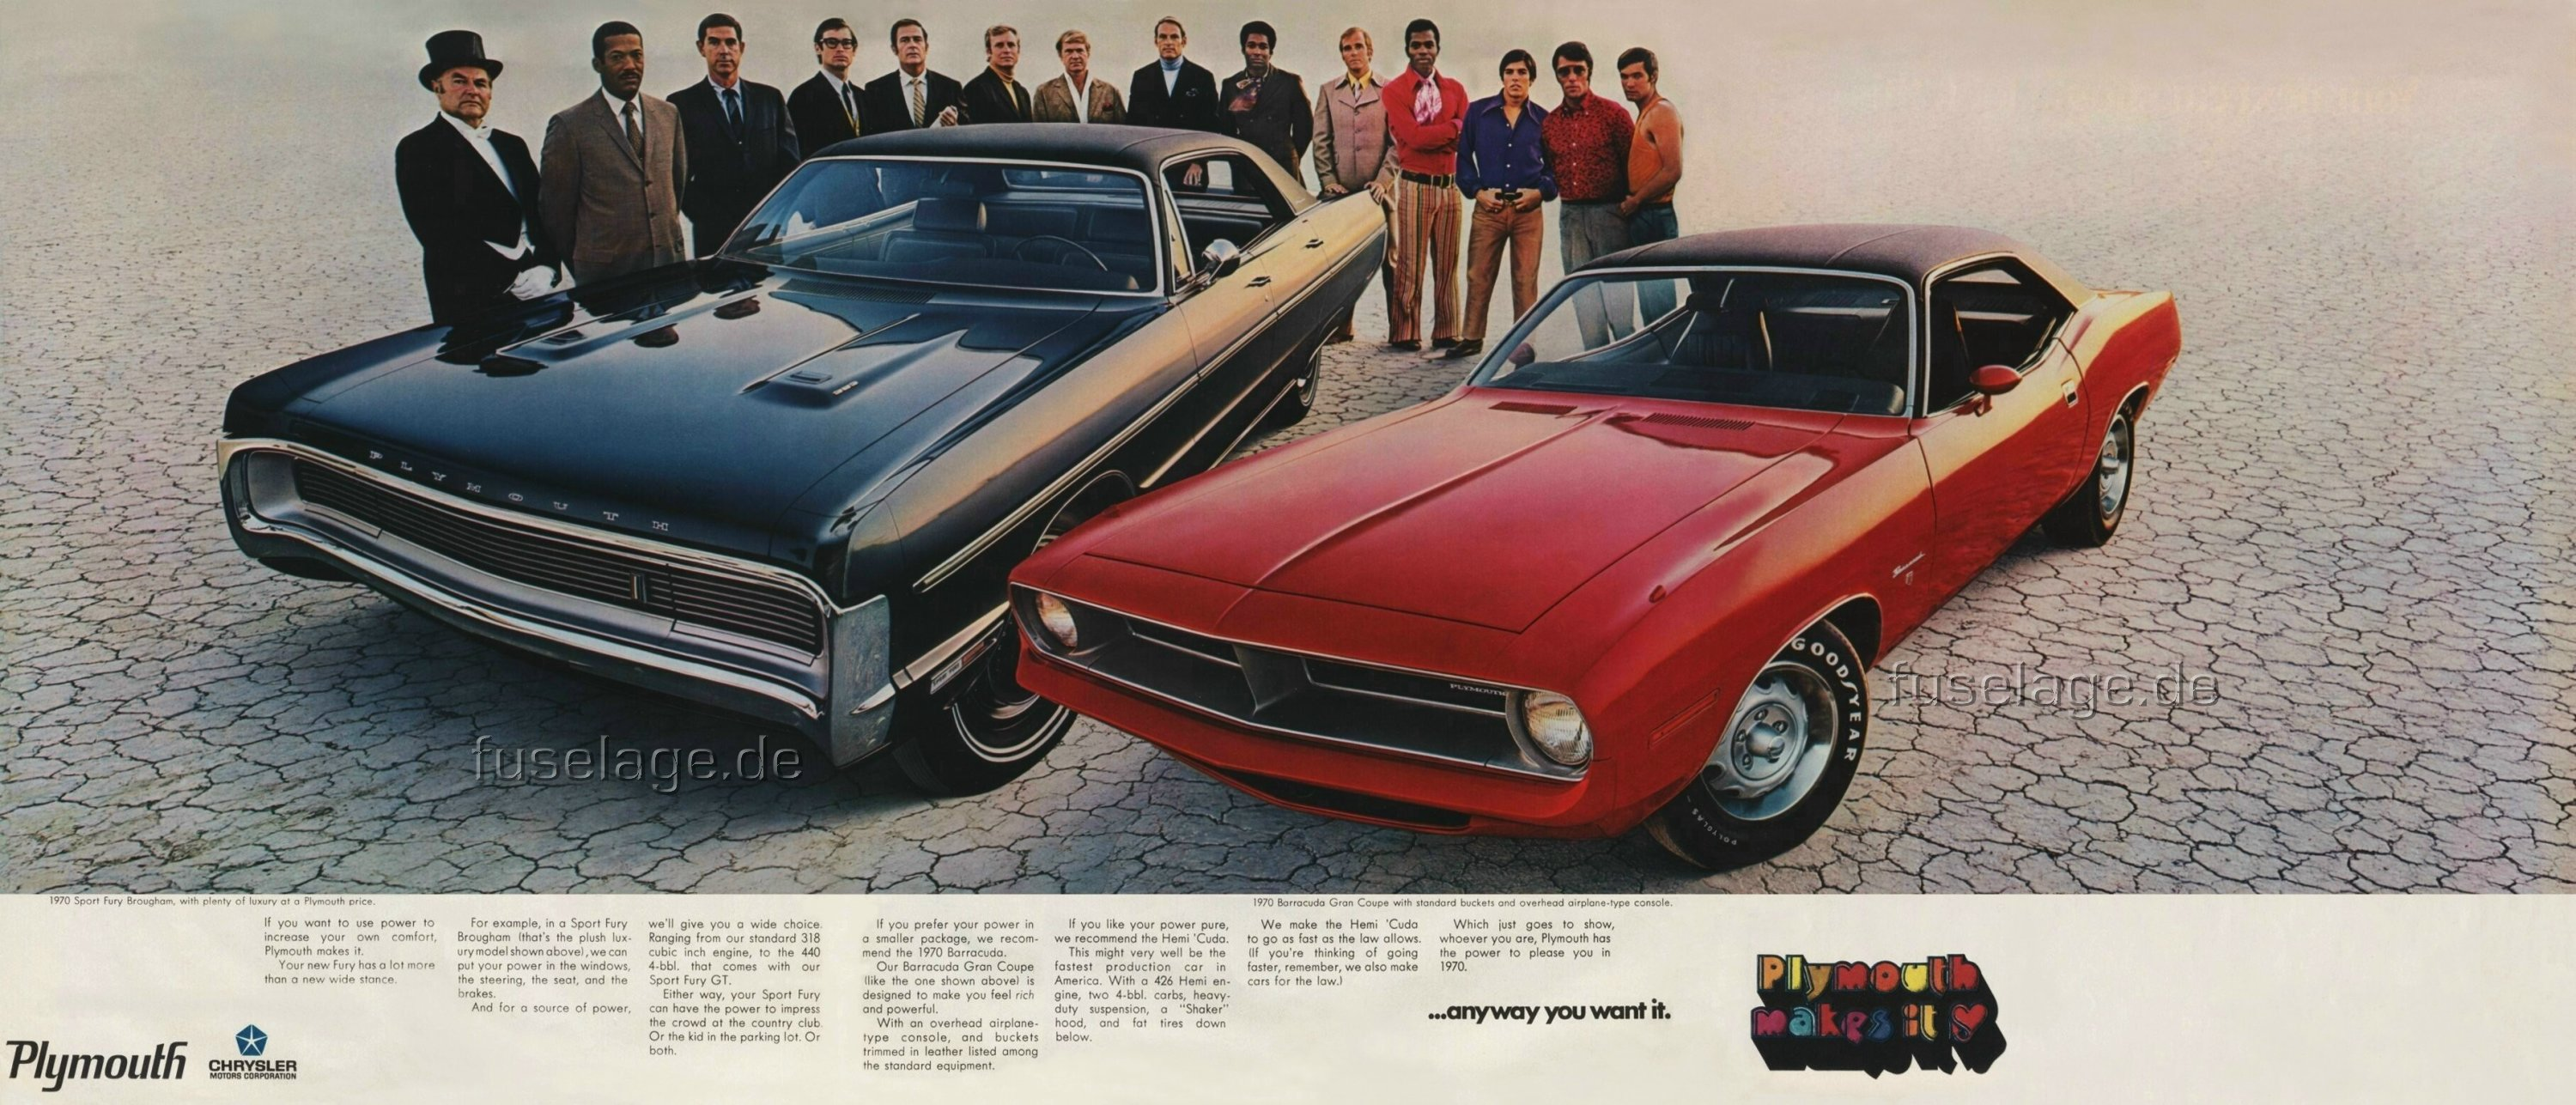 ad promoting the 1970 plymouth sport fury